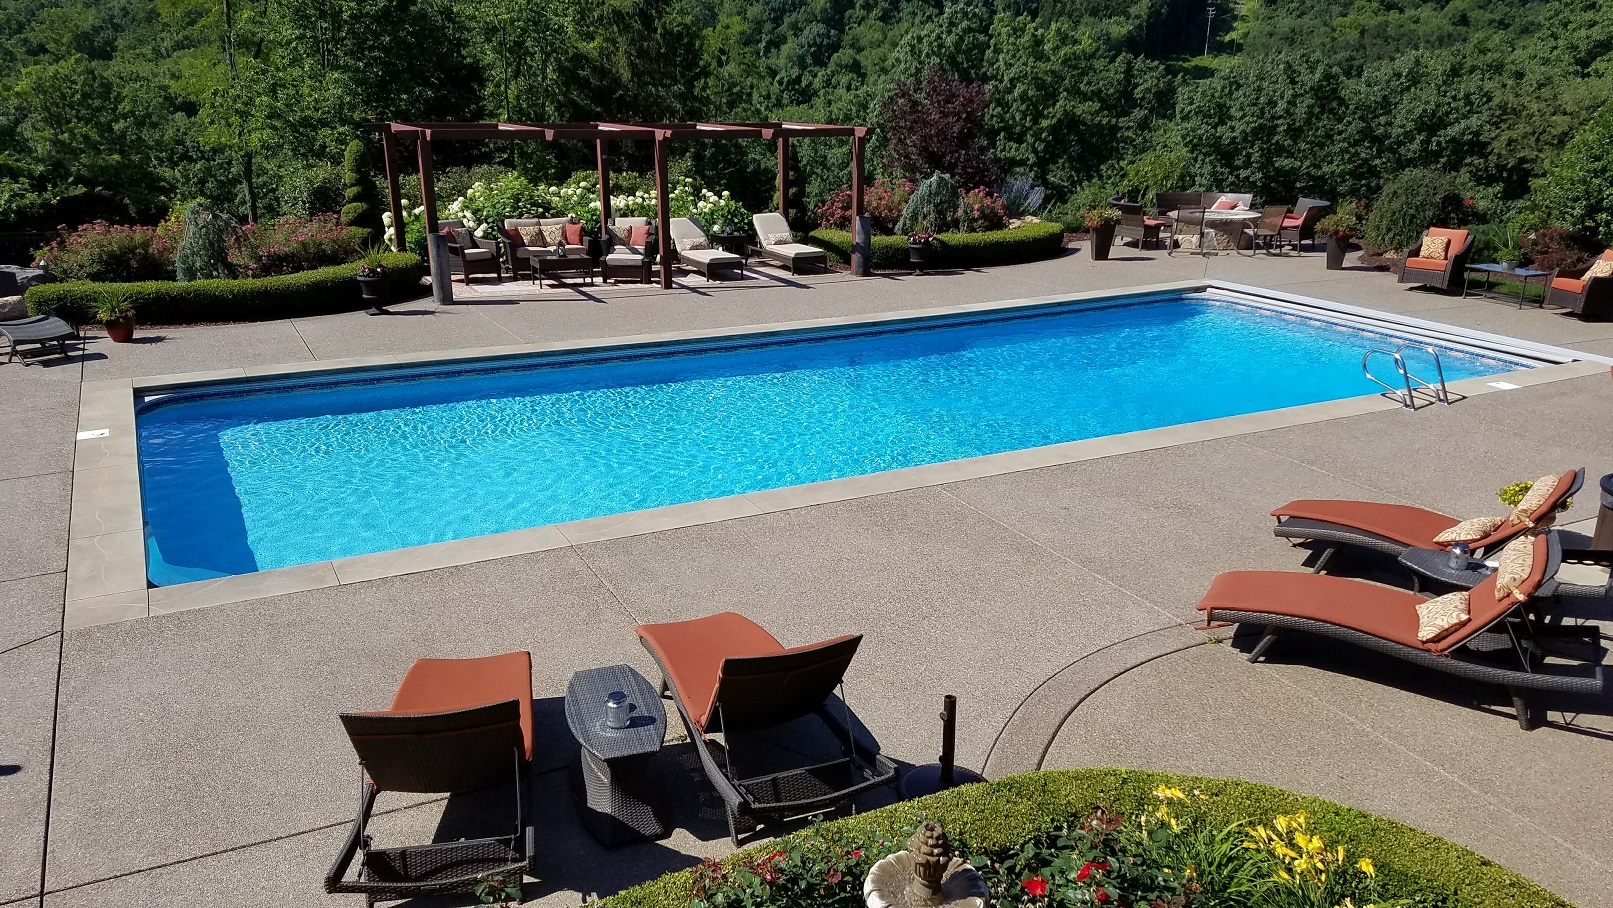 Jacuzzi Pool In Ground Alpine Pools Western Pennsylvania S Pool And Spa Dealer Specials